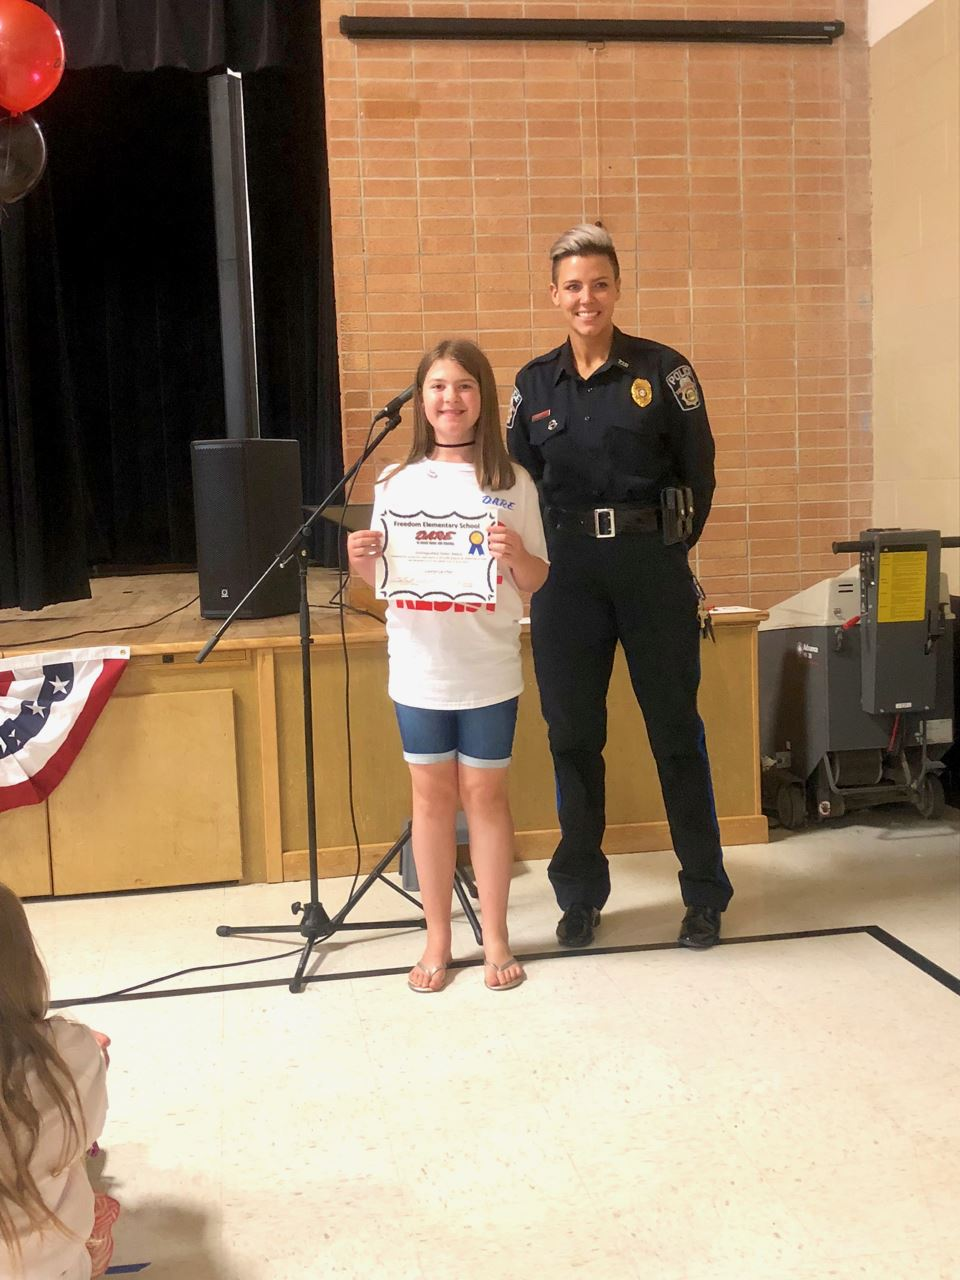 5th graders graduate from DARE at East Elementary